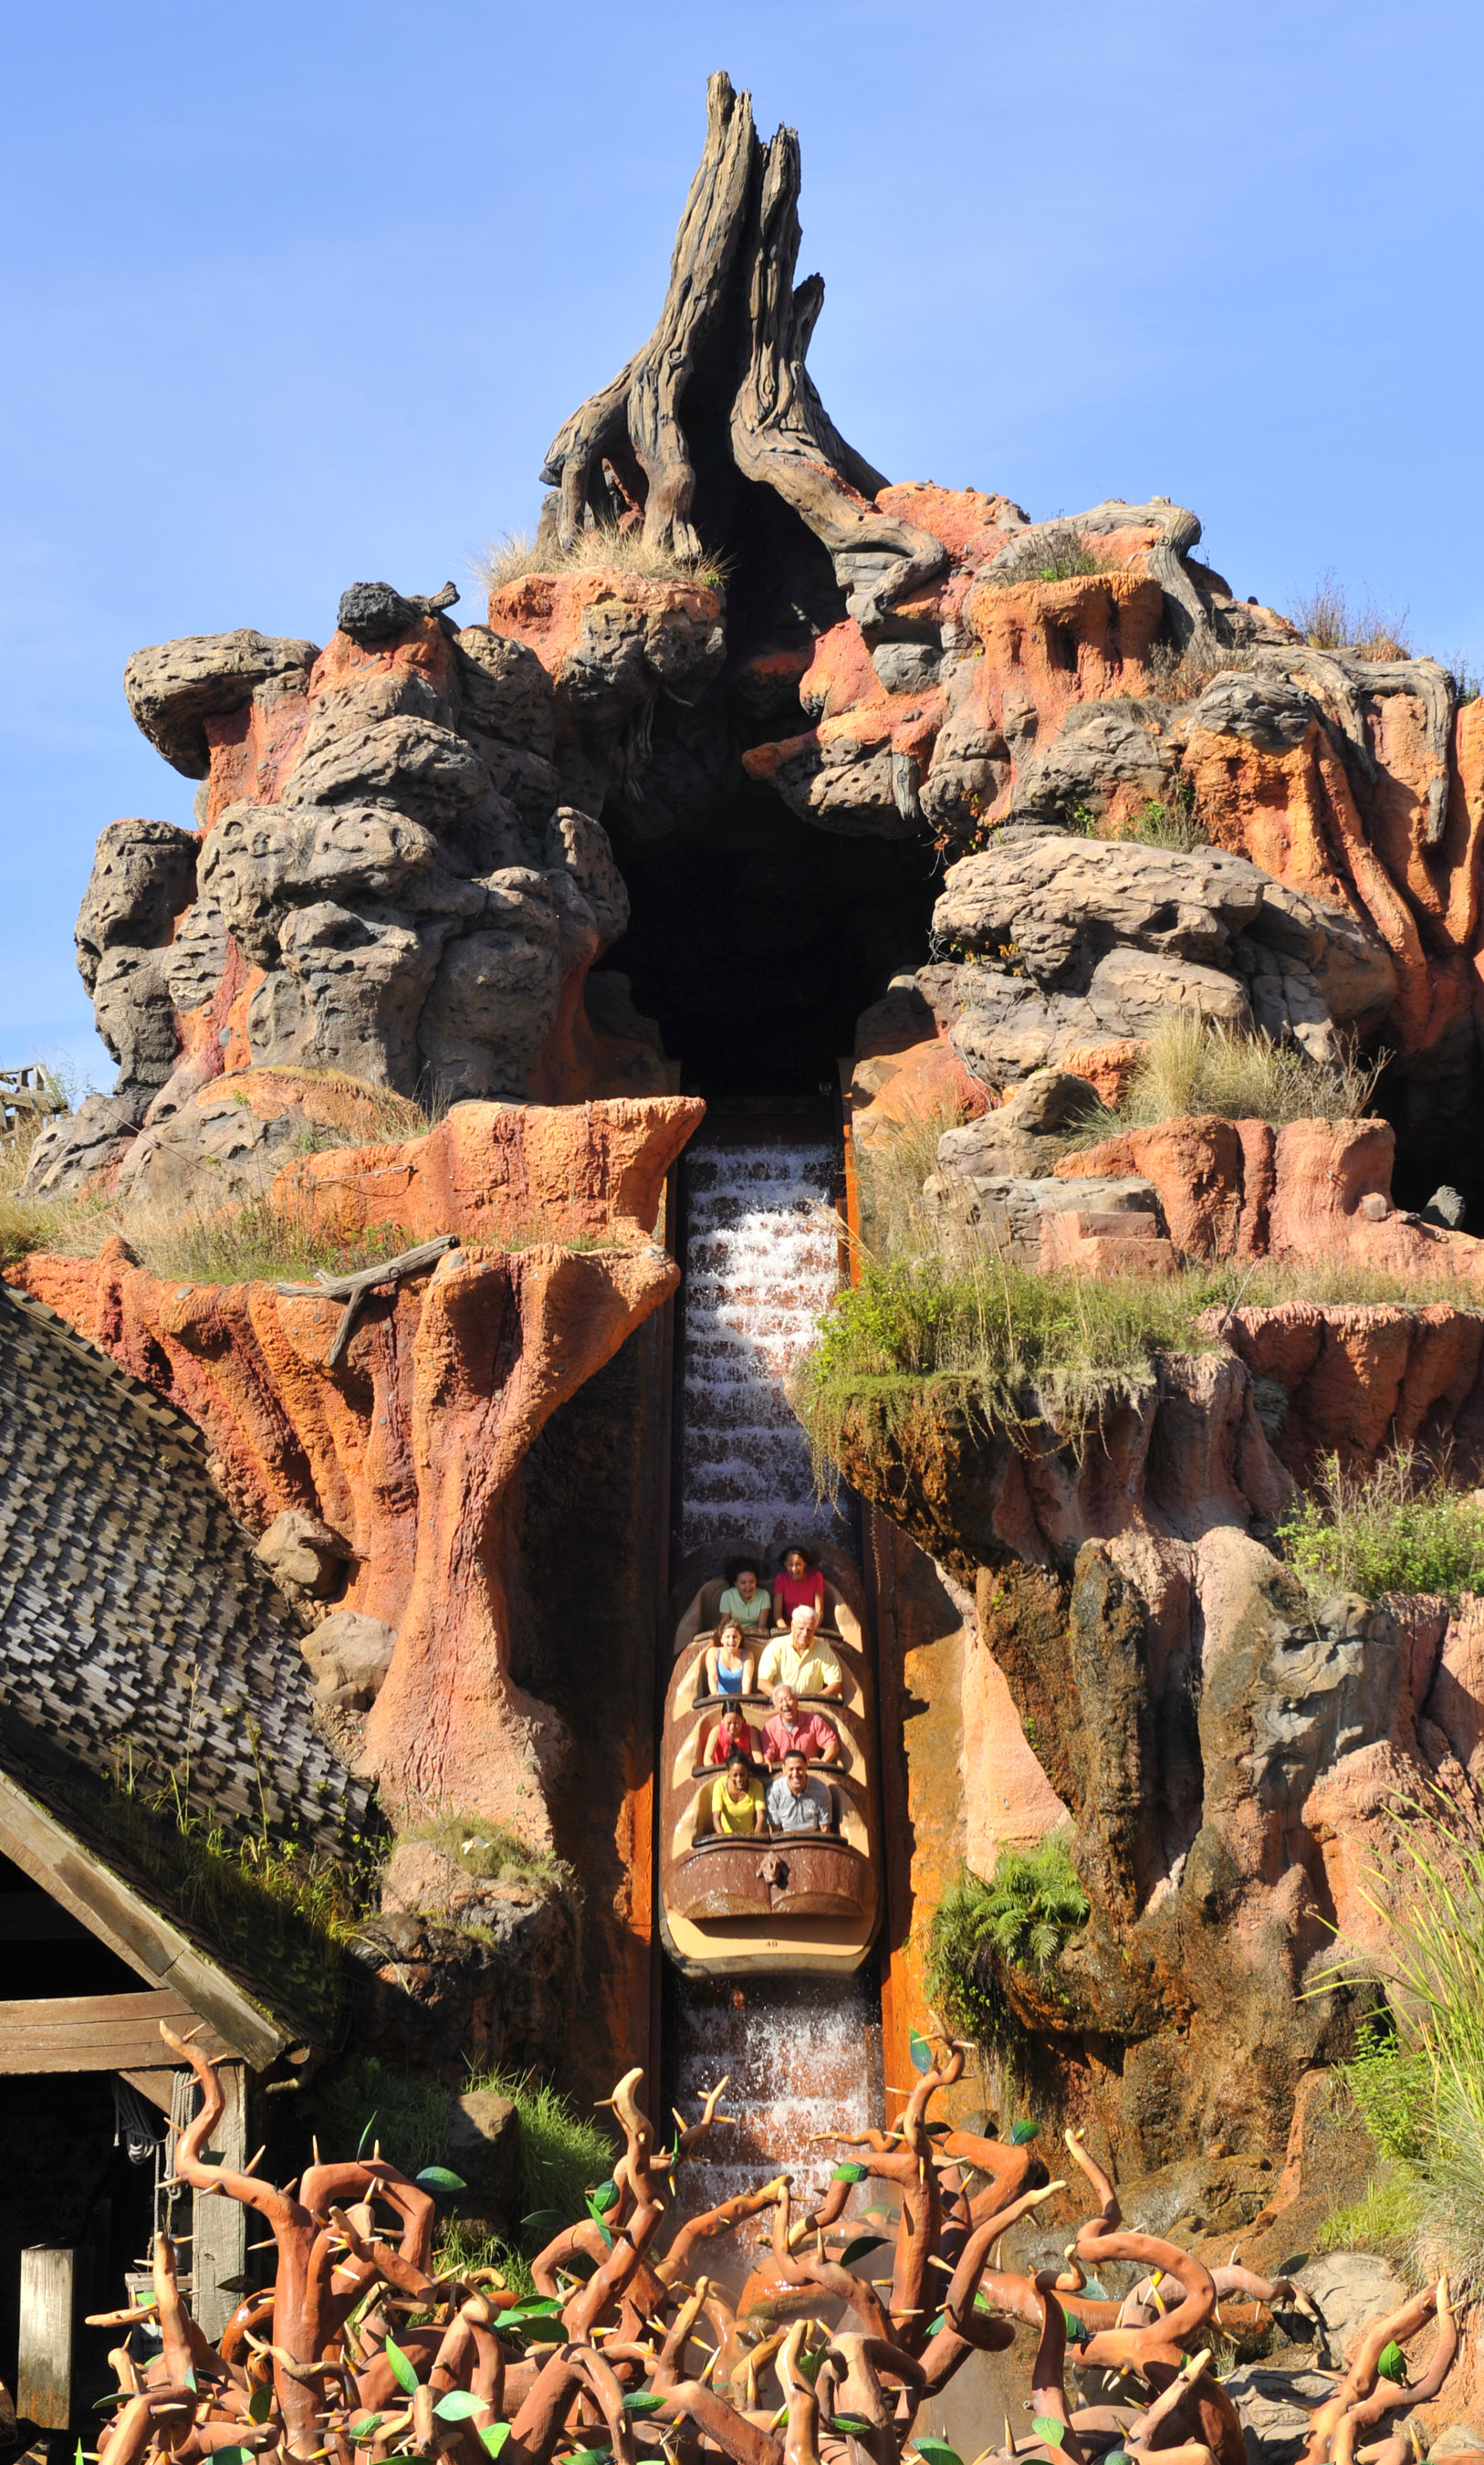 Disney S Splash Mountain To Be Re Imagined With Princess And The